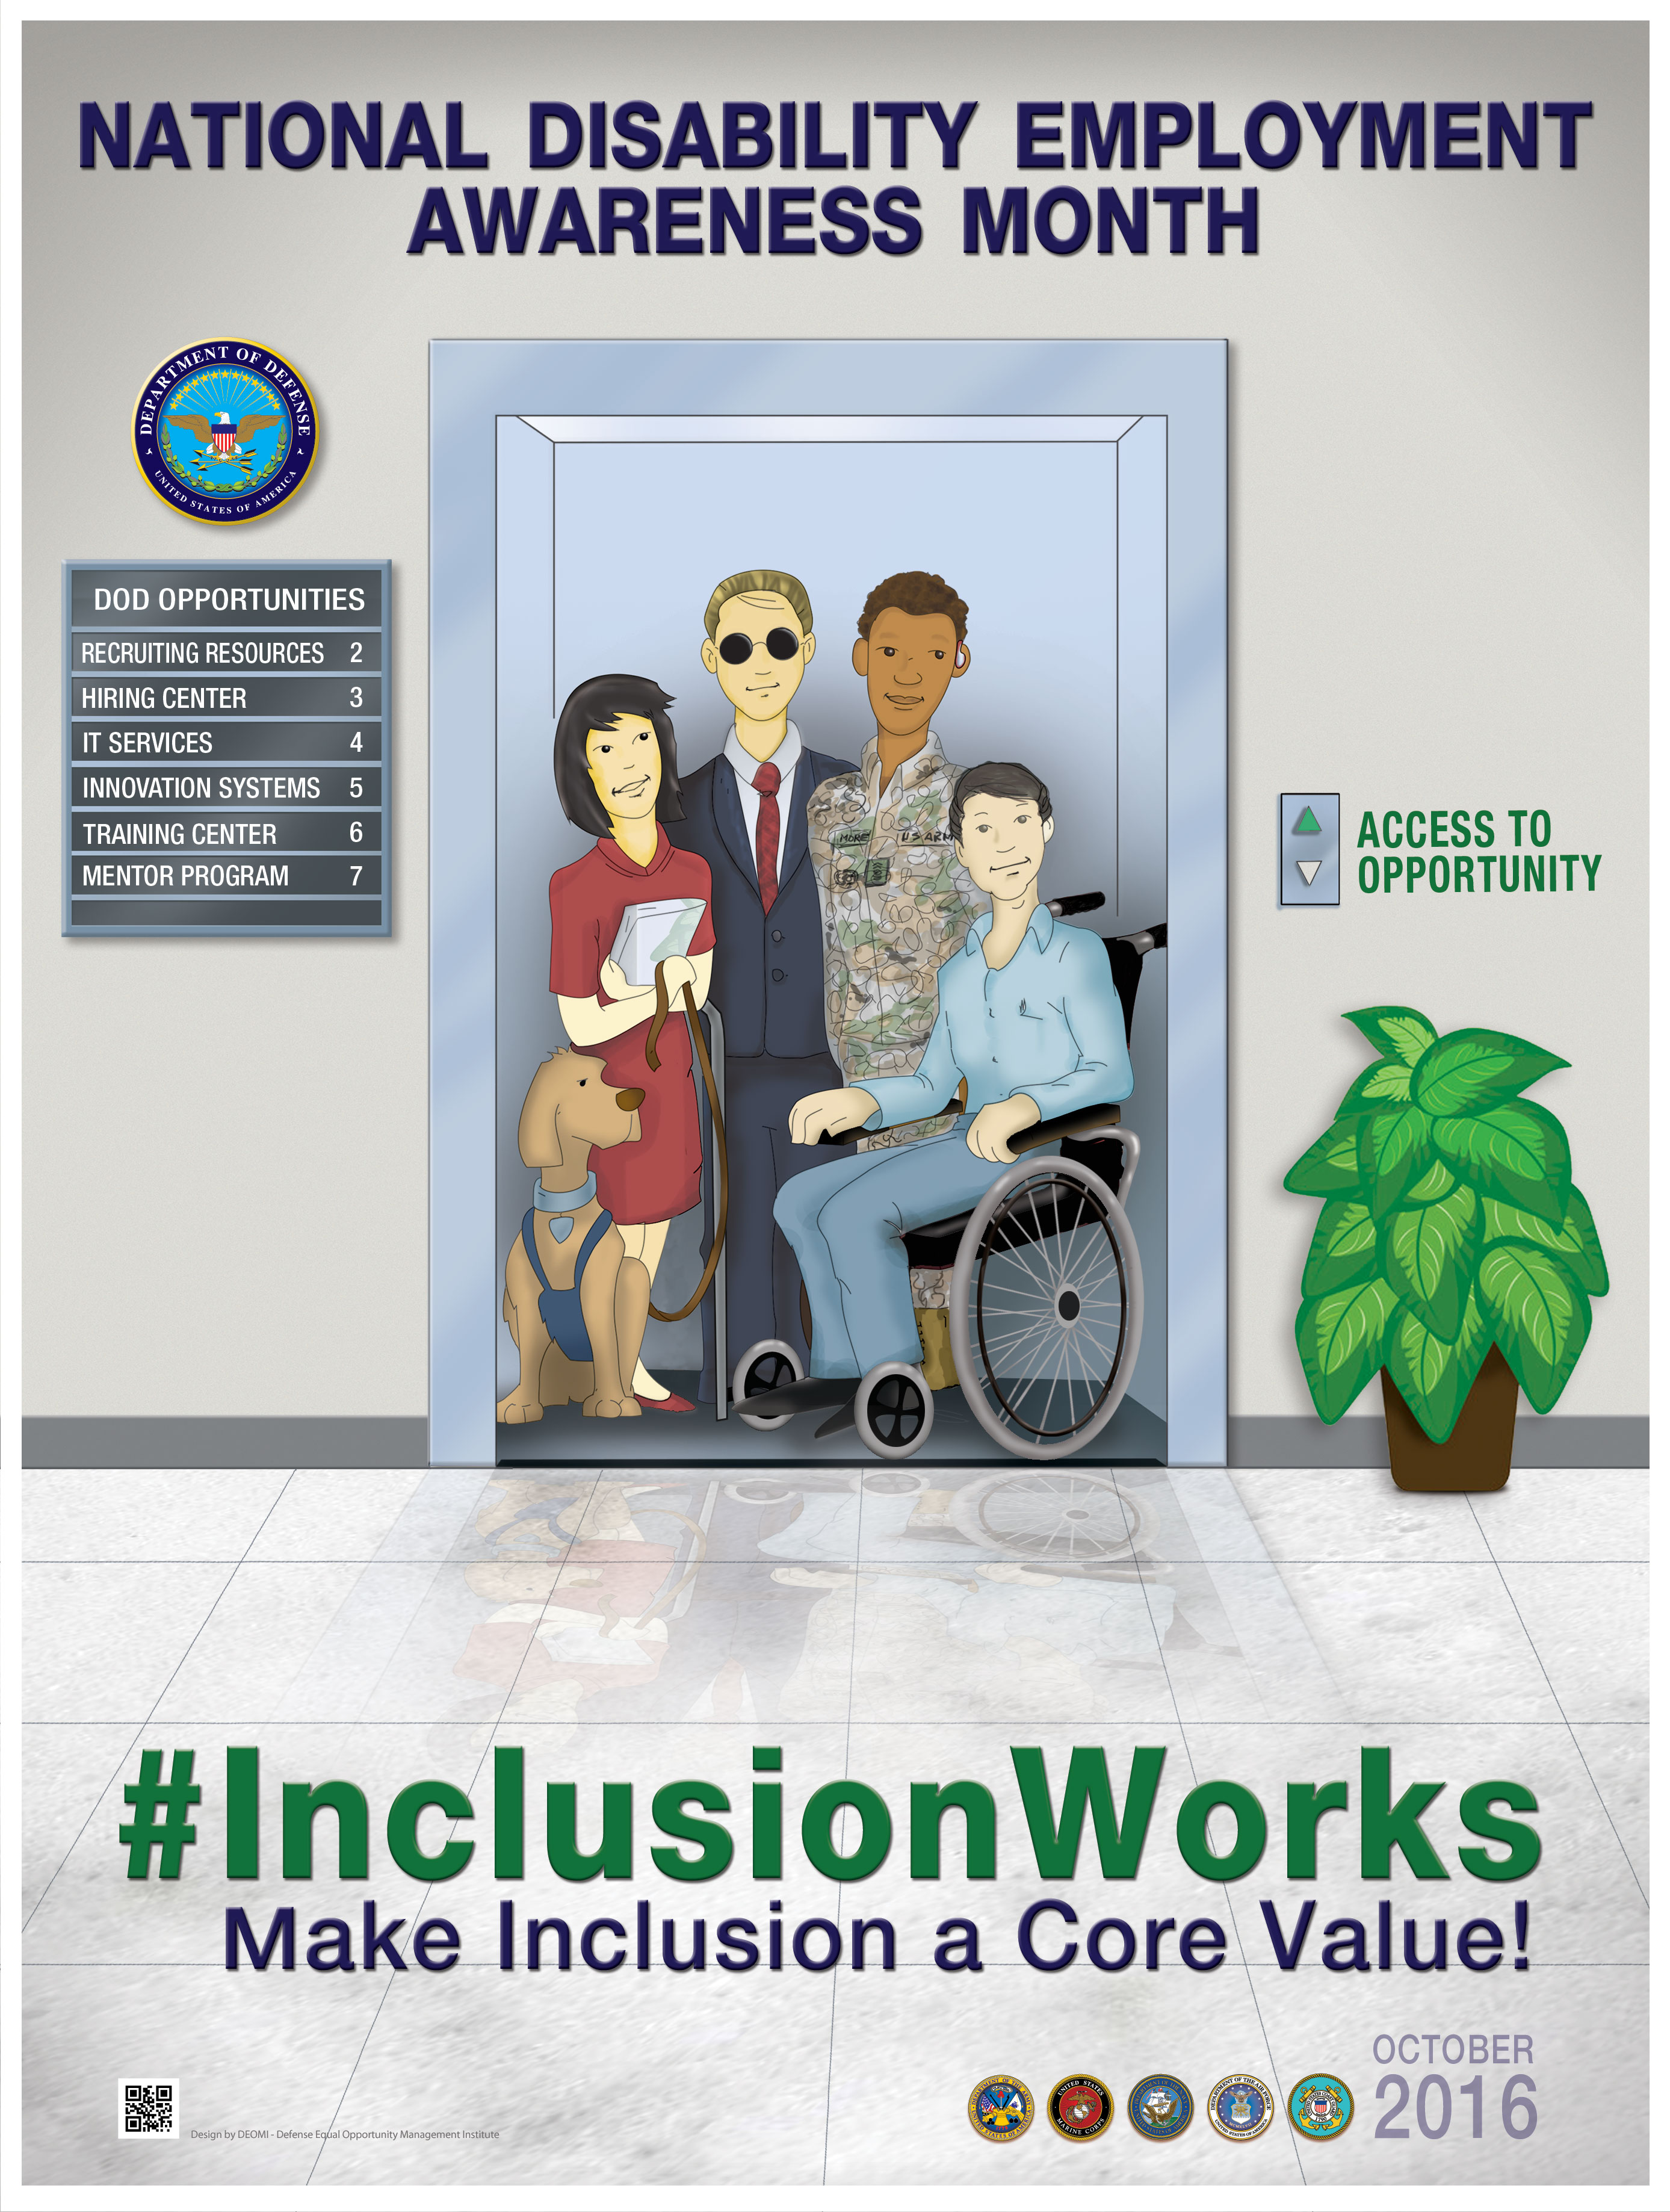 National Disability Employment Awareness Month 2016 Archive